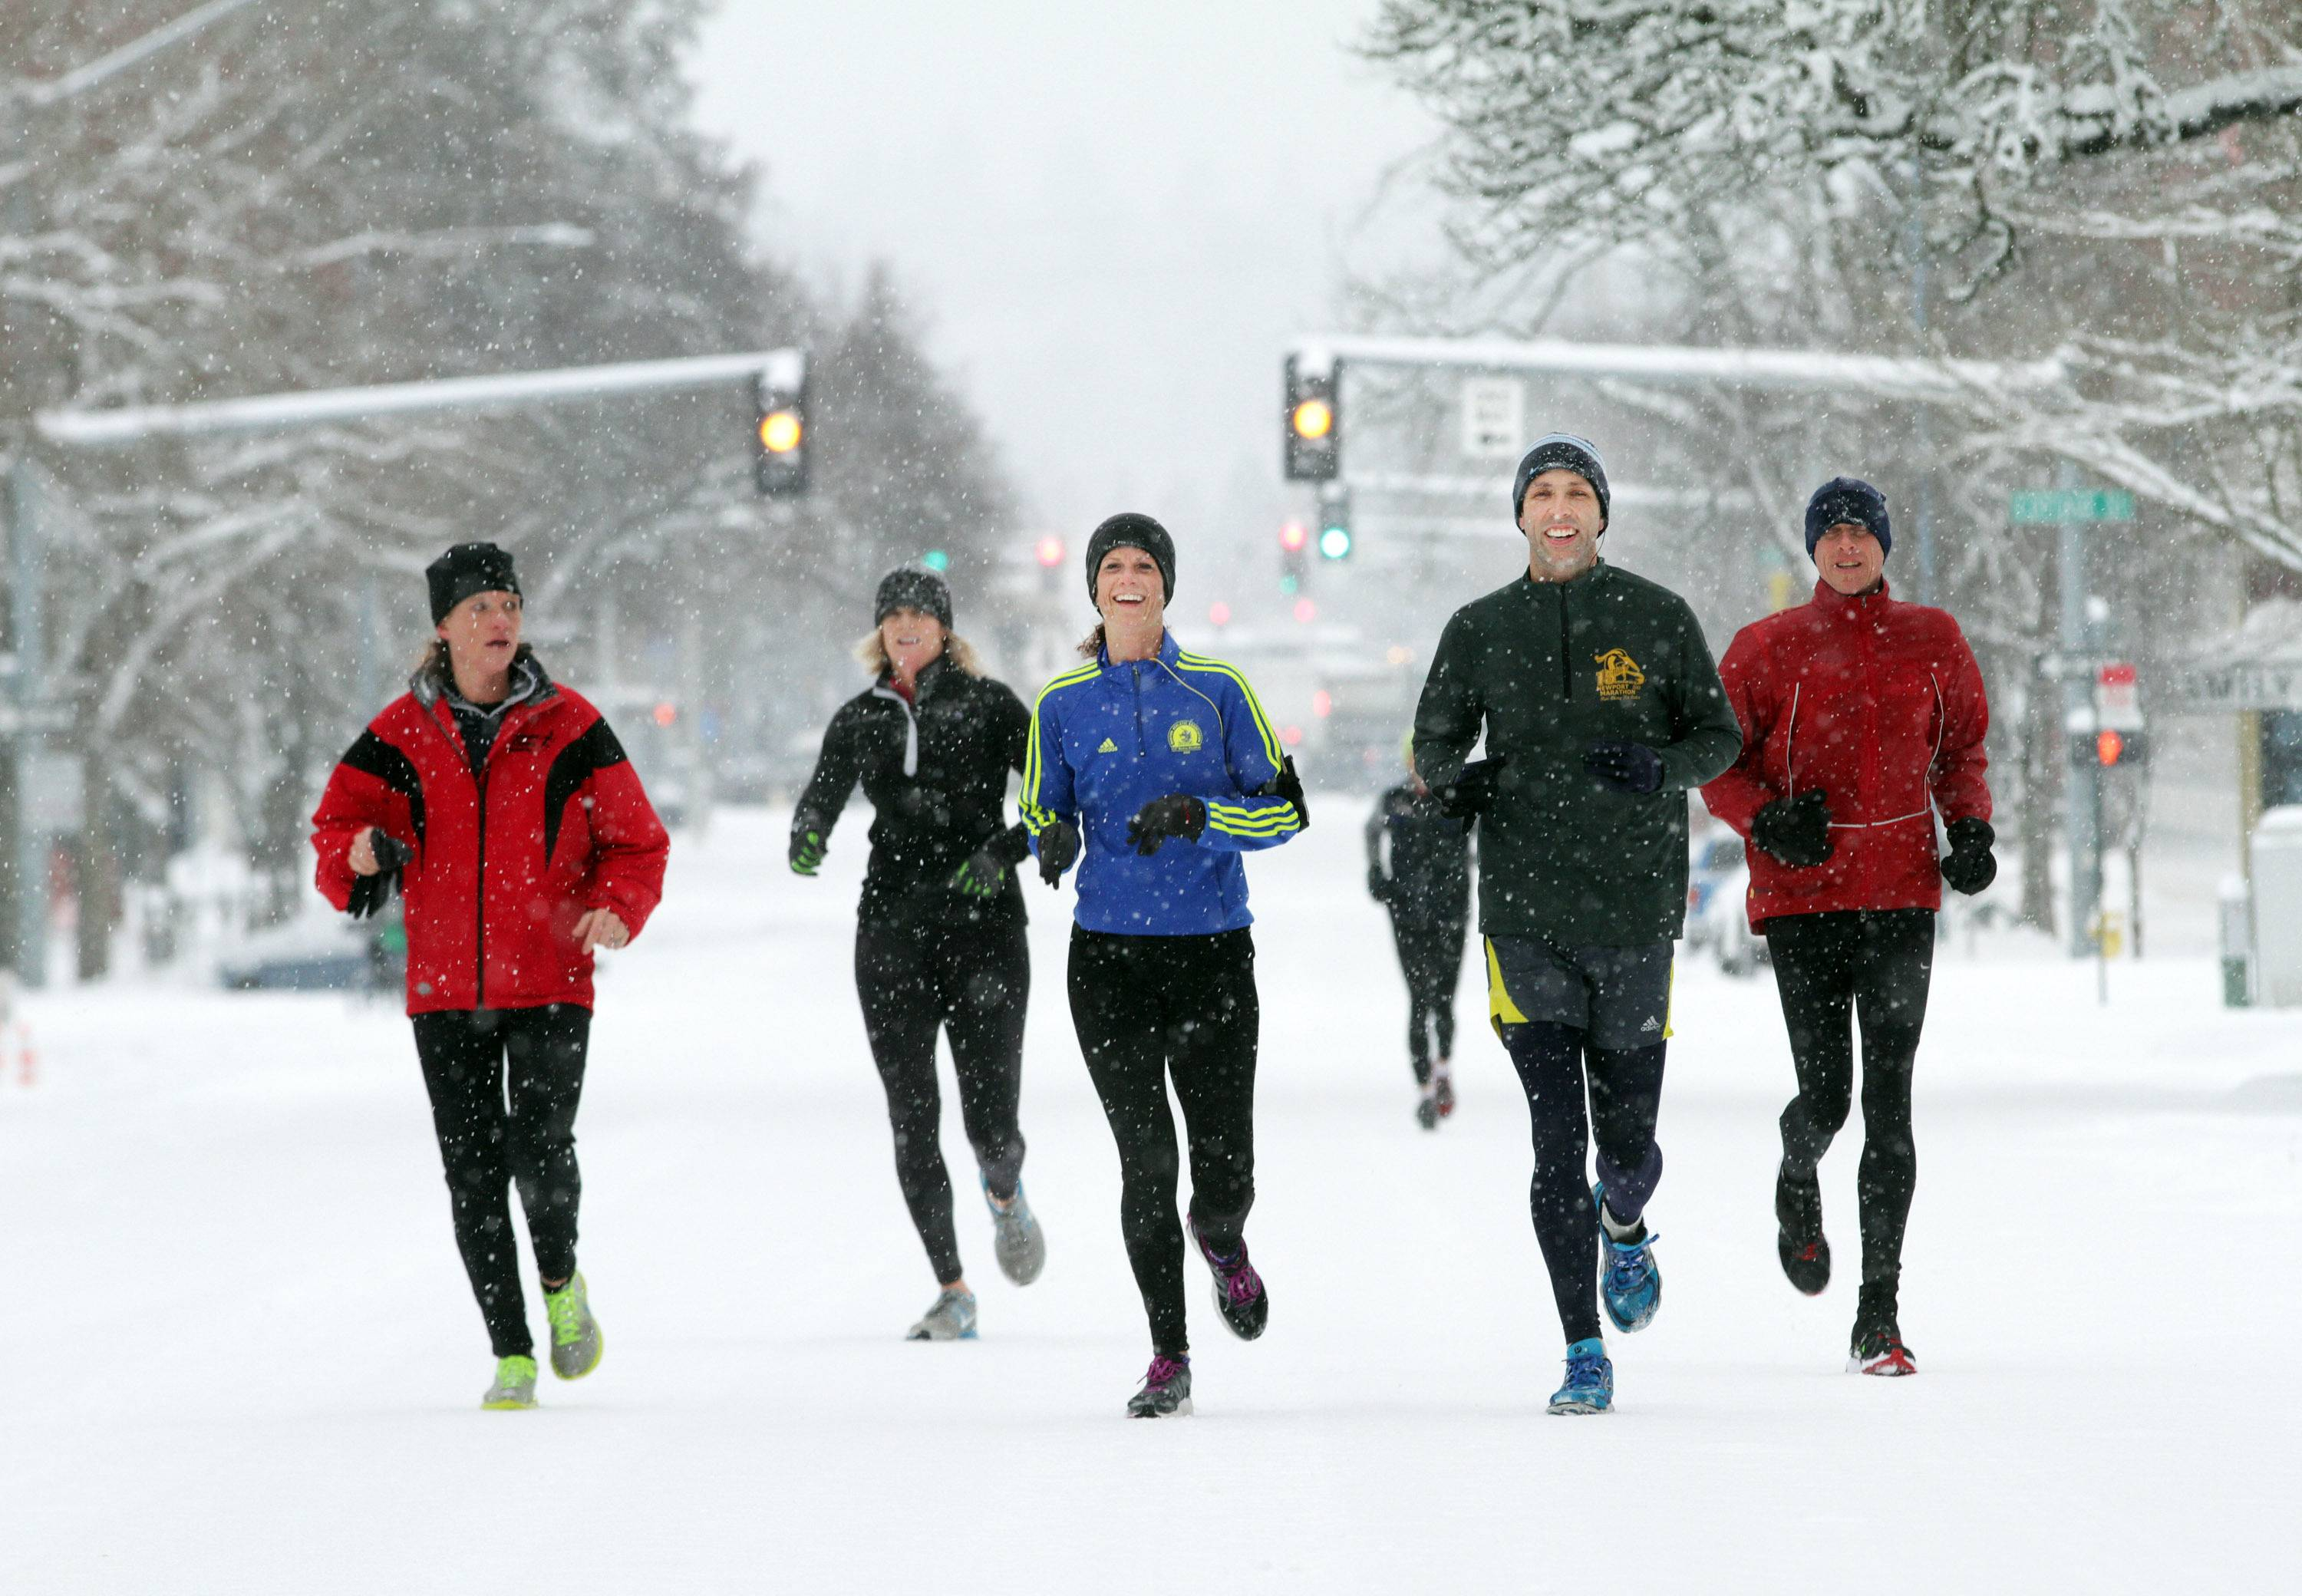 Early morning joggers make their way down the middle of Court St. NE, past the Oregon State Capitol in Salem, Ore. on Saturday, Feb. 8, 2014. Snowfall begins again in earnest for the third day, as Salem remains largely shut down due to a winter storm.